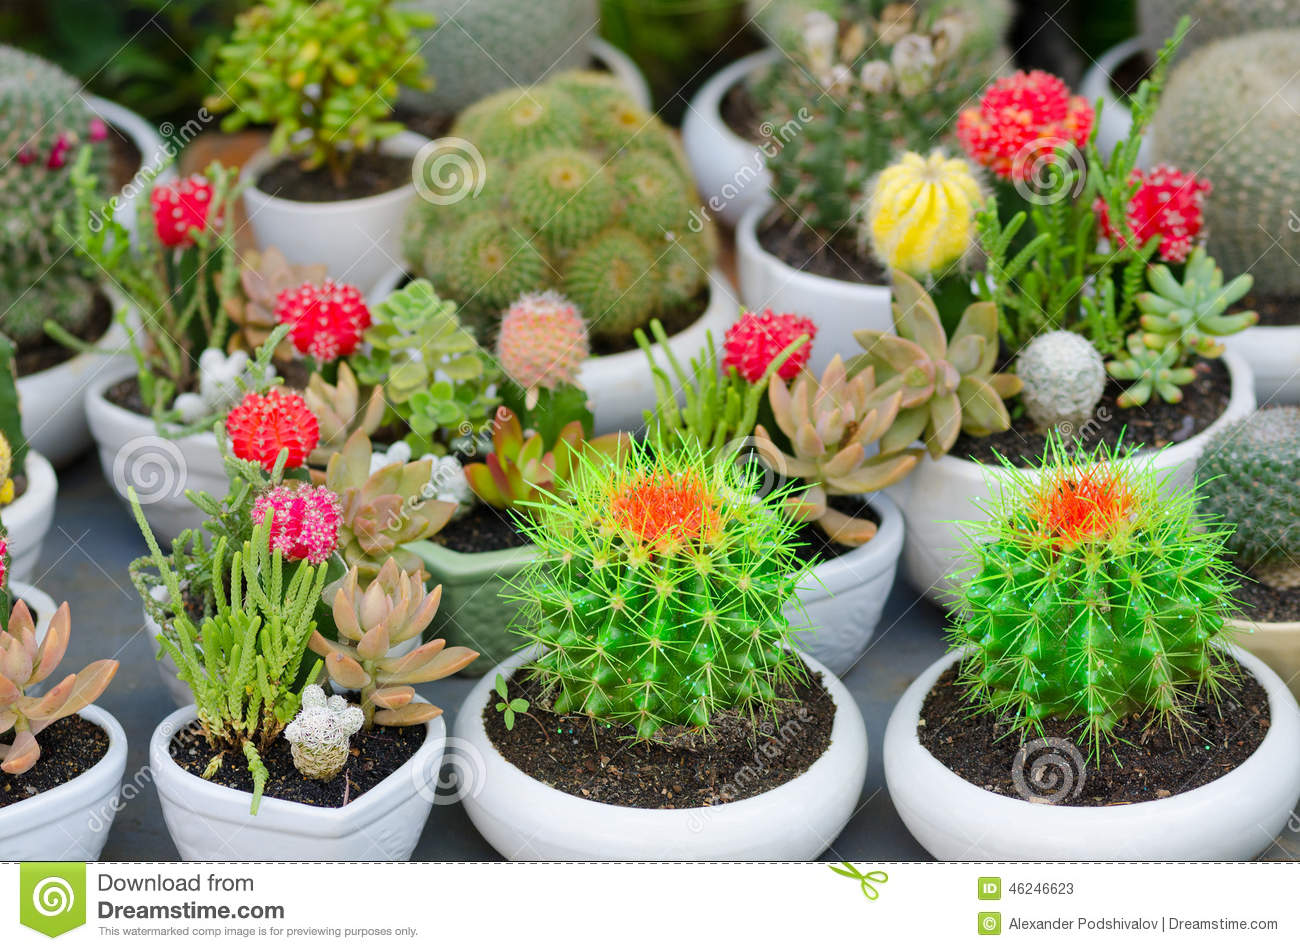 Cactus Pots For Sale Flowering Cacti In Pots Stock Photo Image 46246623